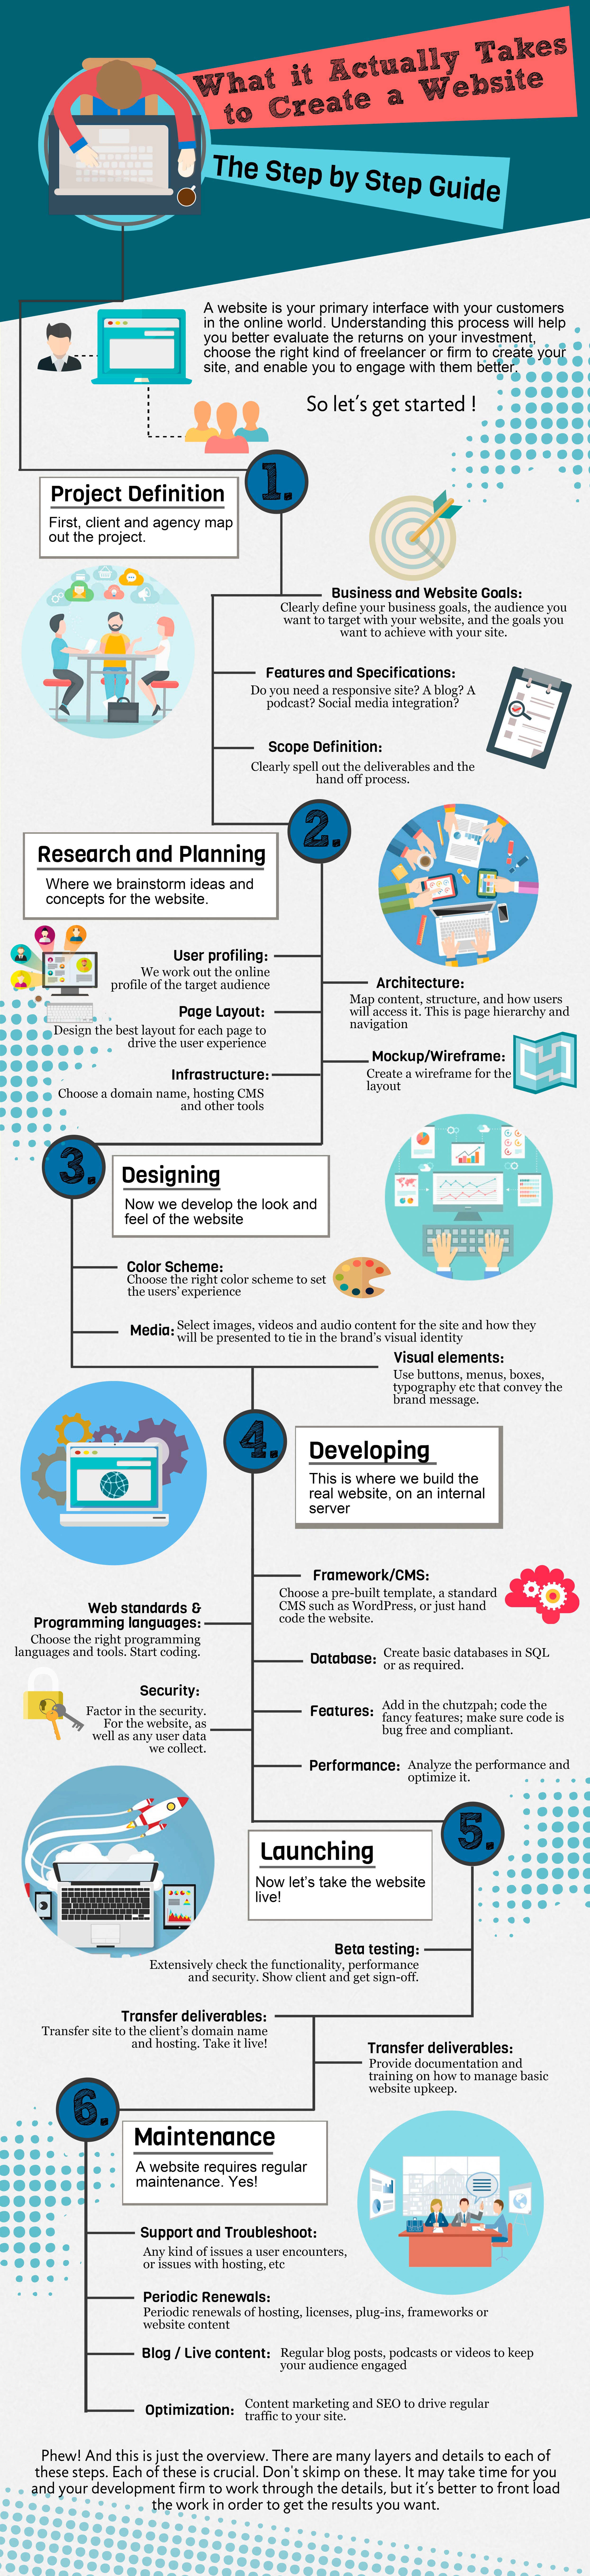 An infographic detailing how a website is built, aimed at clients